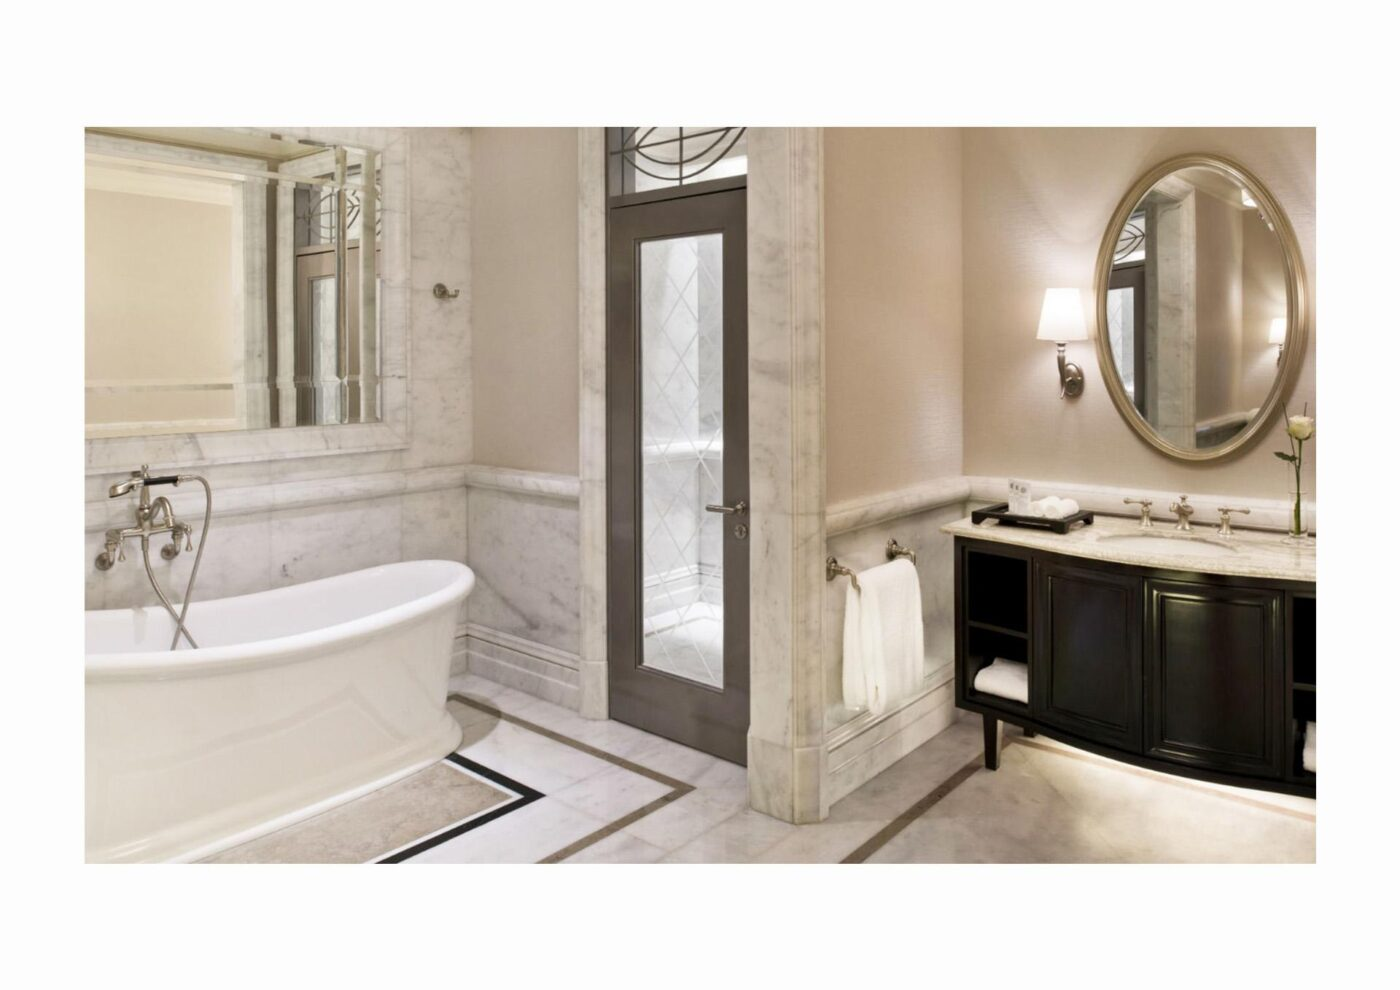 Harris Jackson bathroom design Dubai